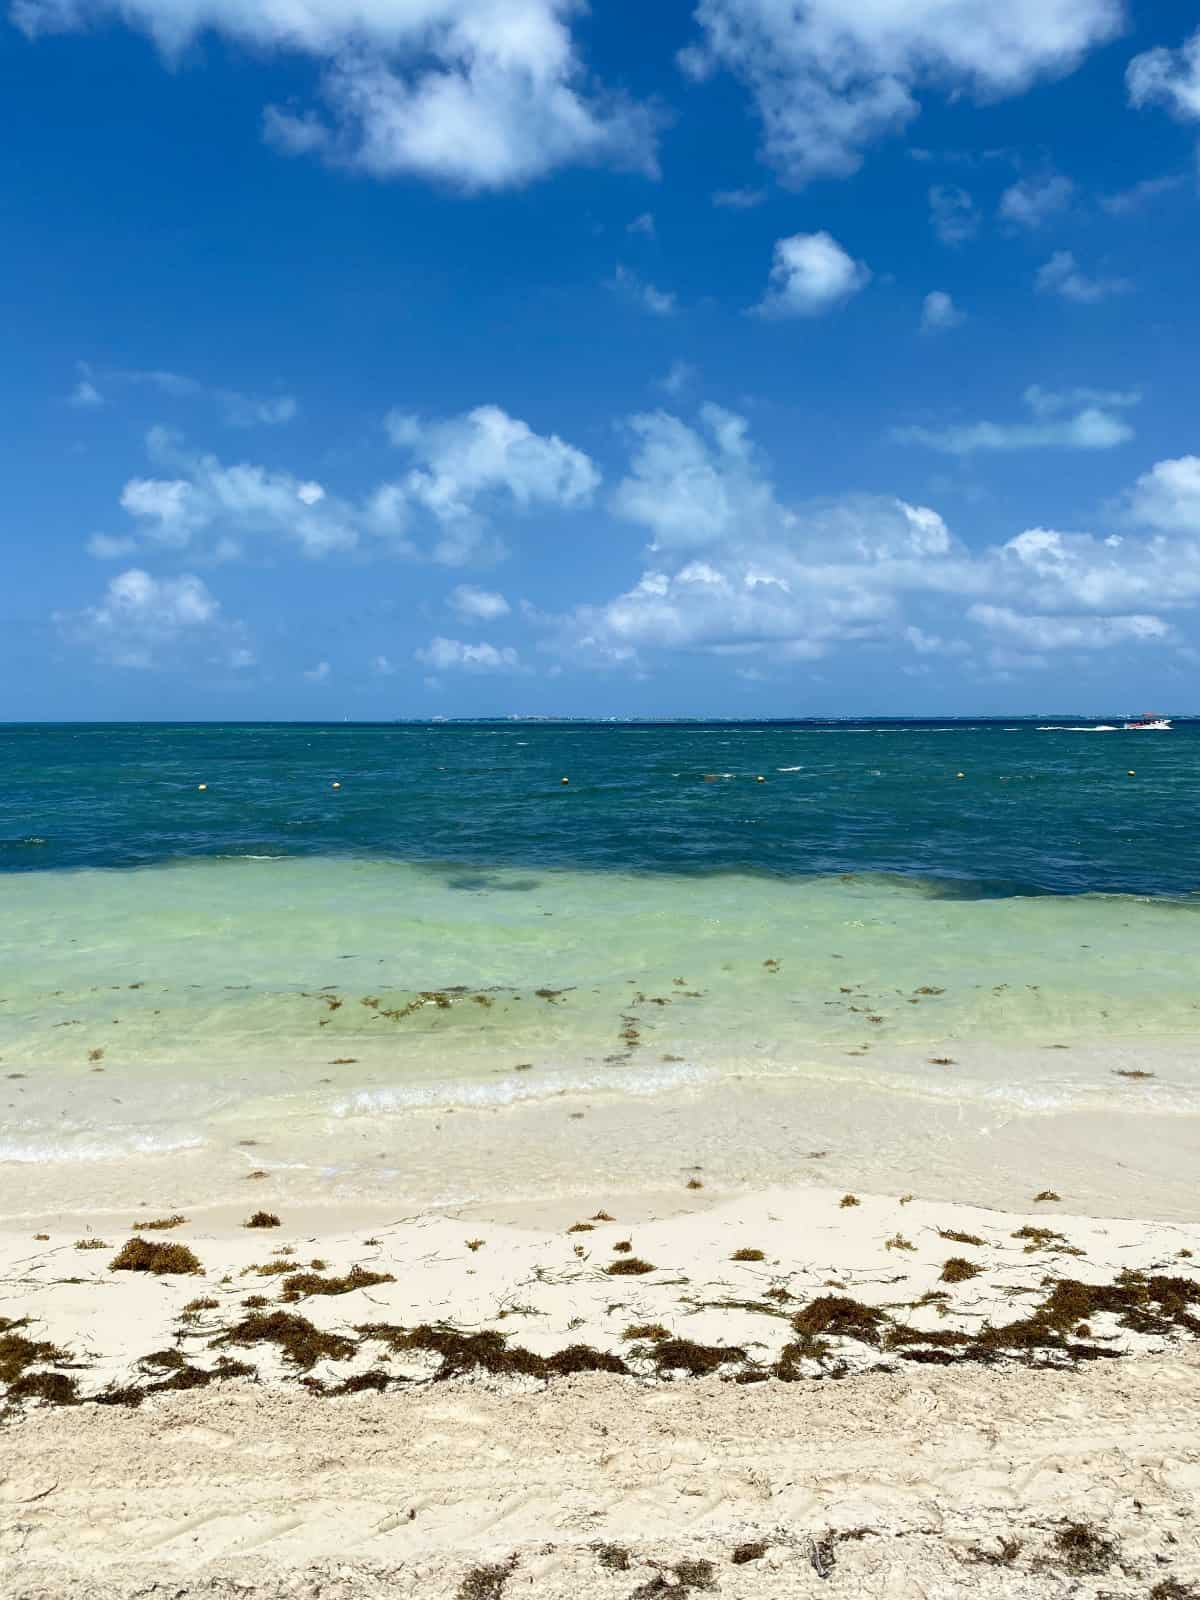 A detailed review of Excellence Playa Mujeres - the beach is not the best